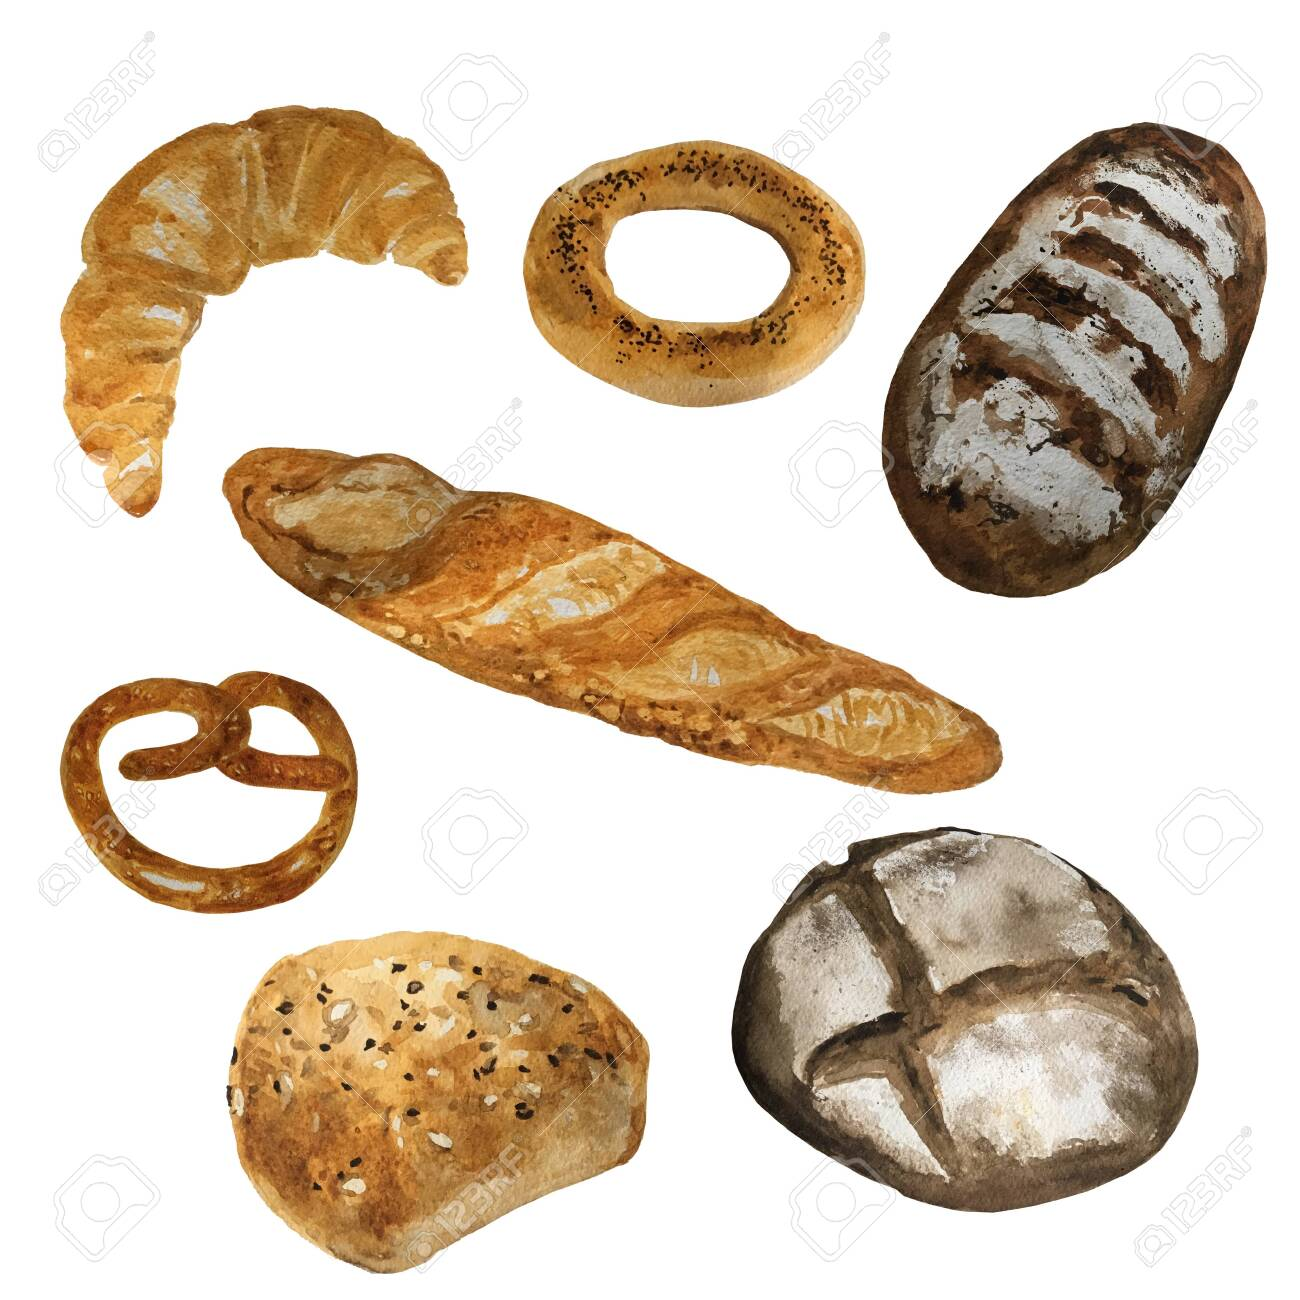 Bread Bakery Product Watercolor Drawing Set Fresh Loaf Of Bread Stock Photo Picture And Royalty Free Image Image 122256948